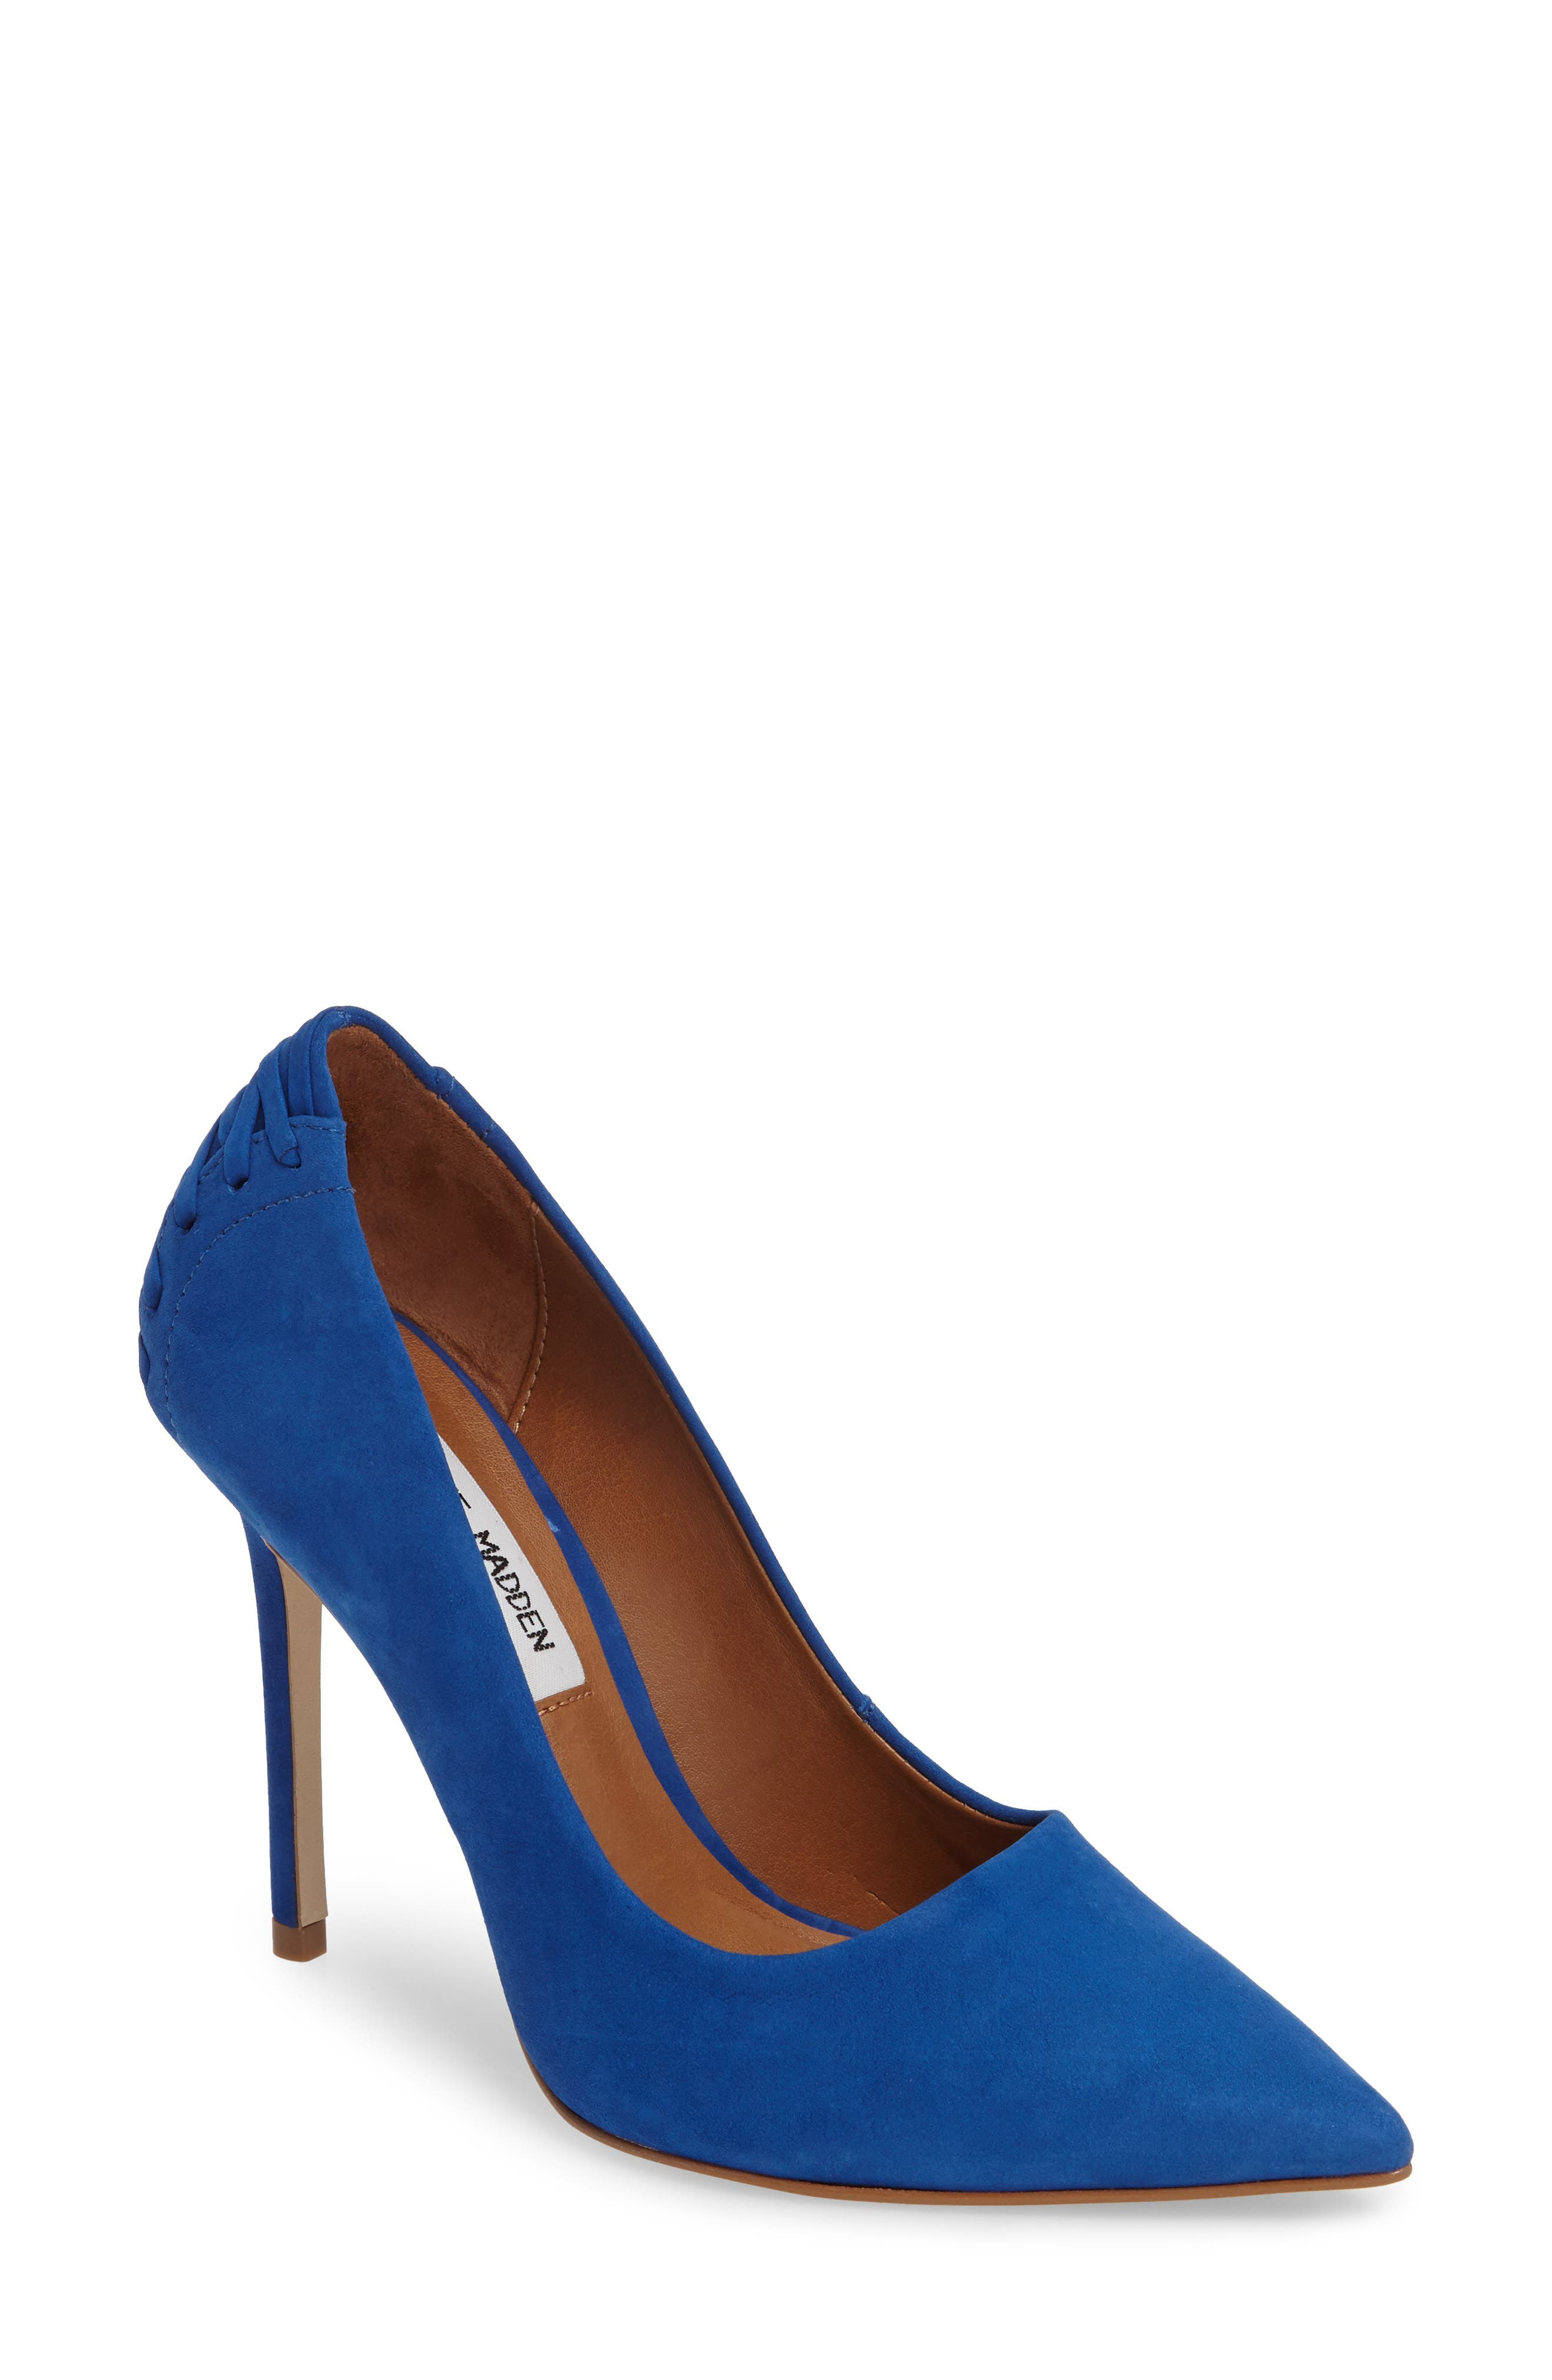 Paiton Laced Heel Pump,                         Main,                         color, Blue Nubuck